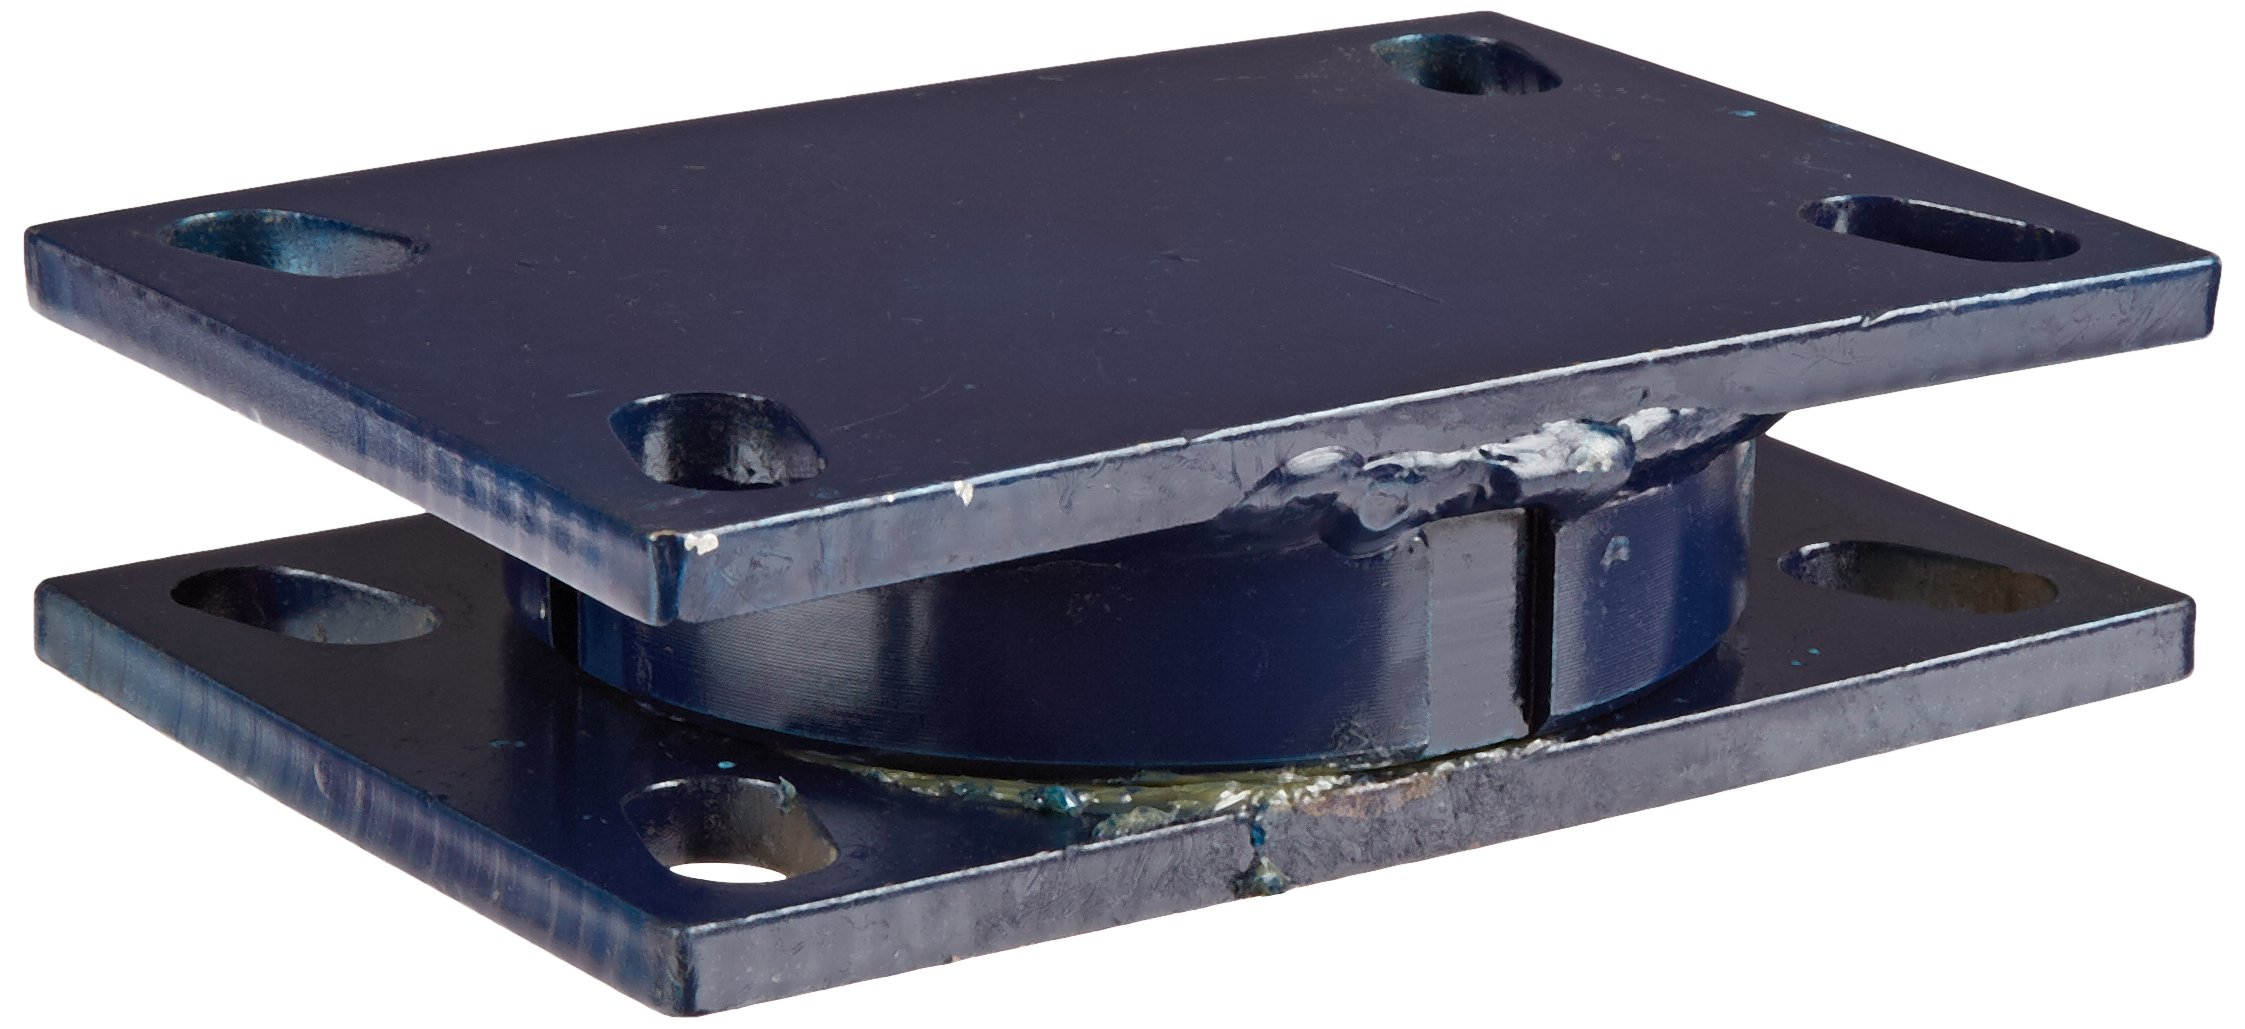 RWM Casters T75-75RT 75 Series Turntable 1-11/16'' High, 4500 Pound Capacity